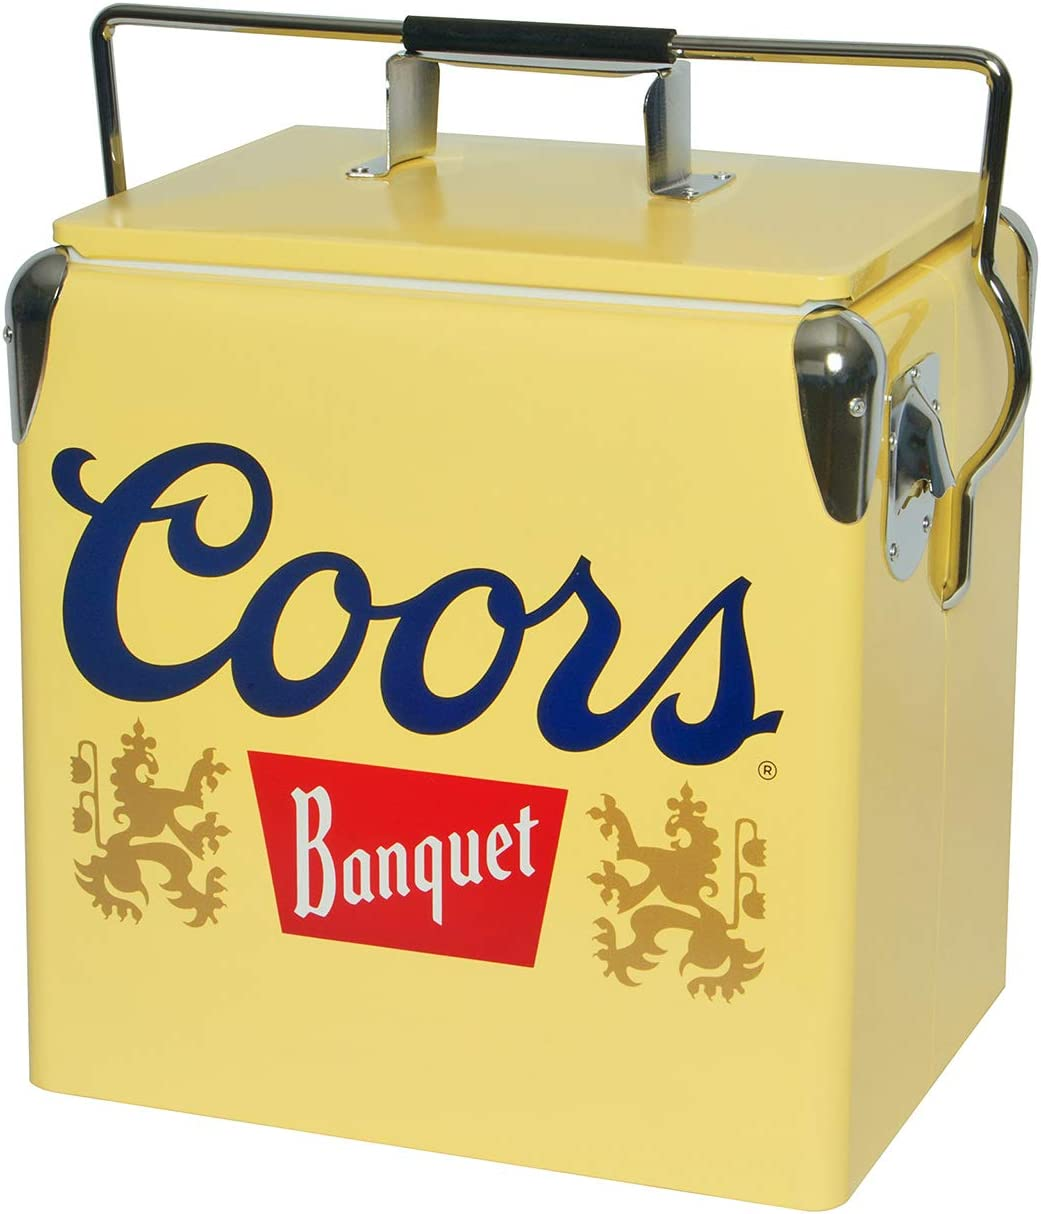 Coors Banquet Portable Ice Chest